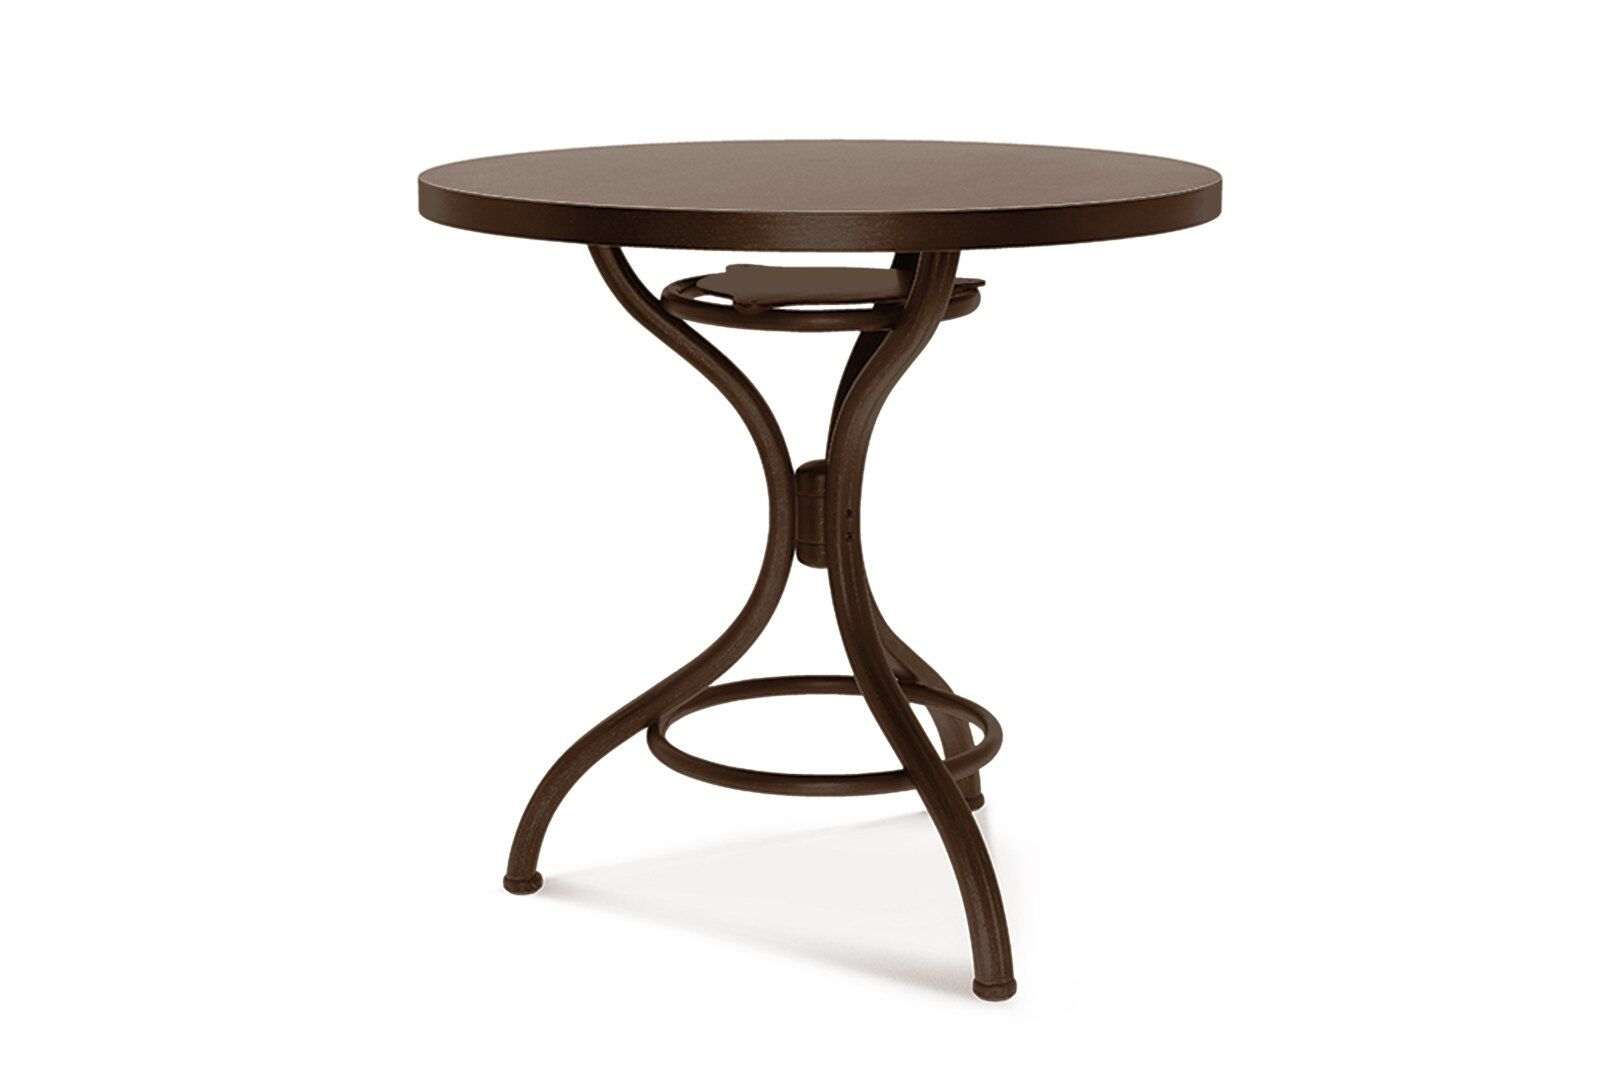 Wels Small Round Dining Table  / 1